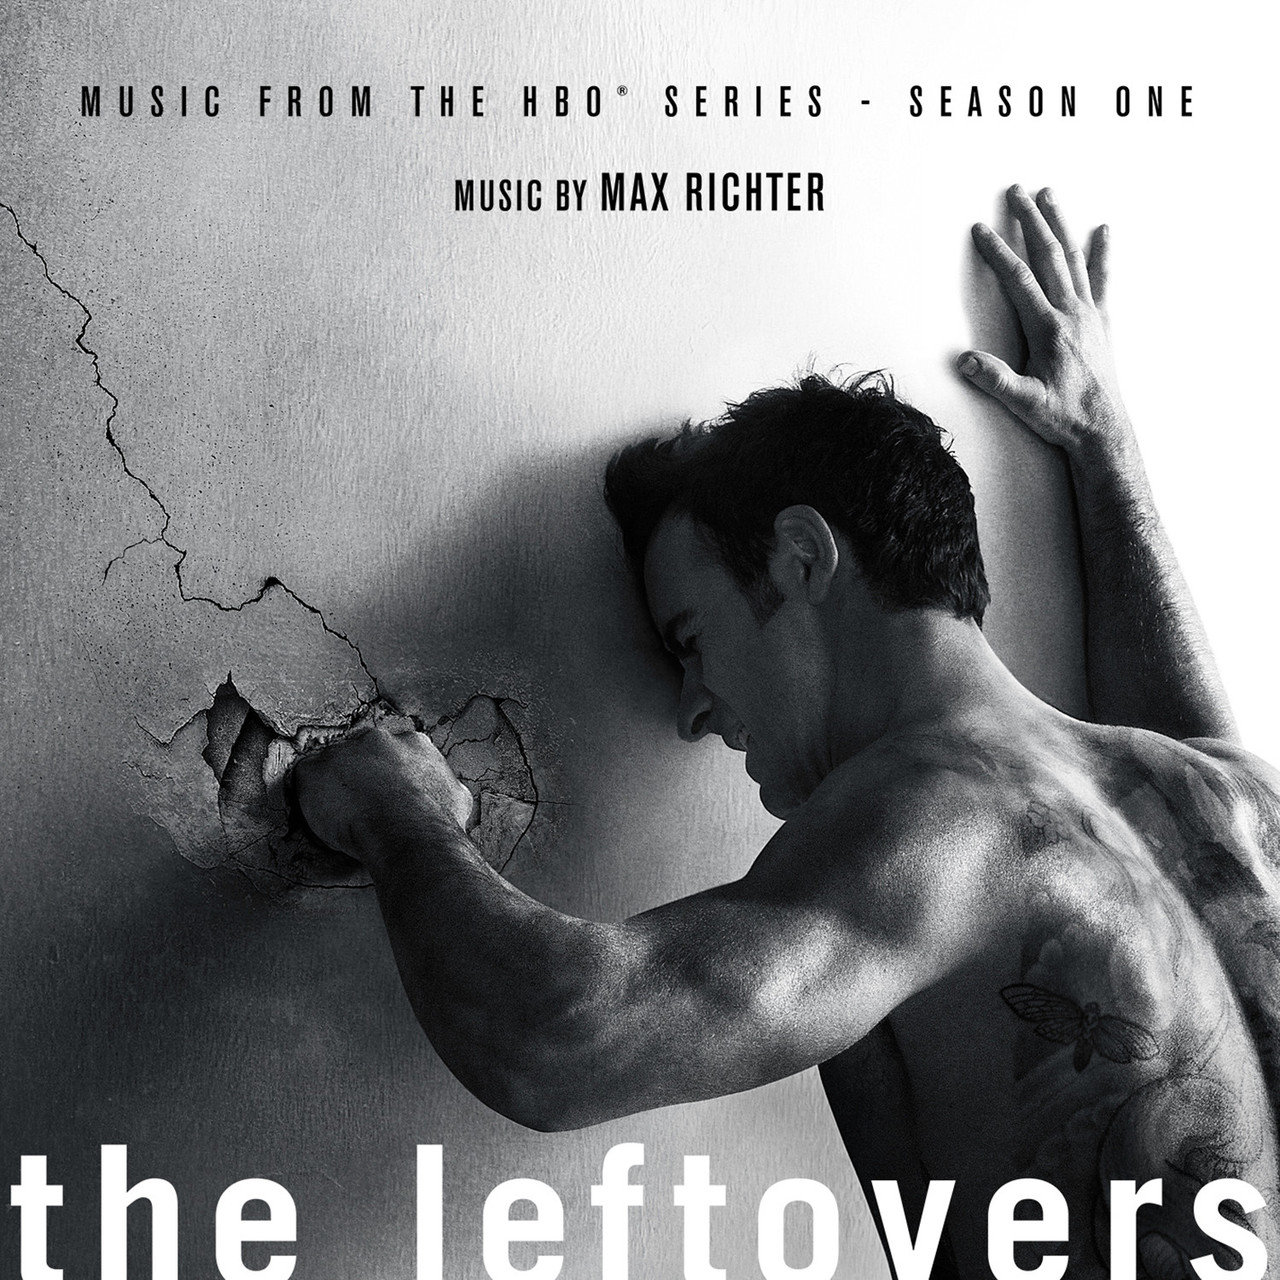 The Leftovers (Music from the HBO® Series) Season 1